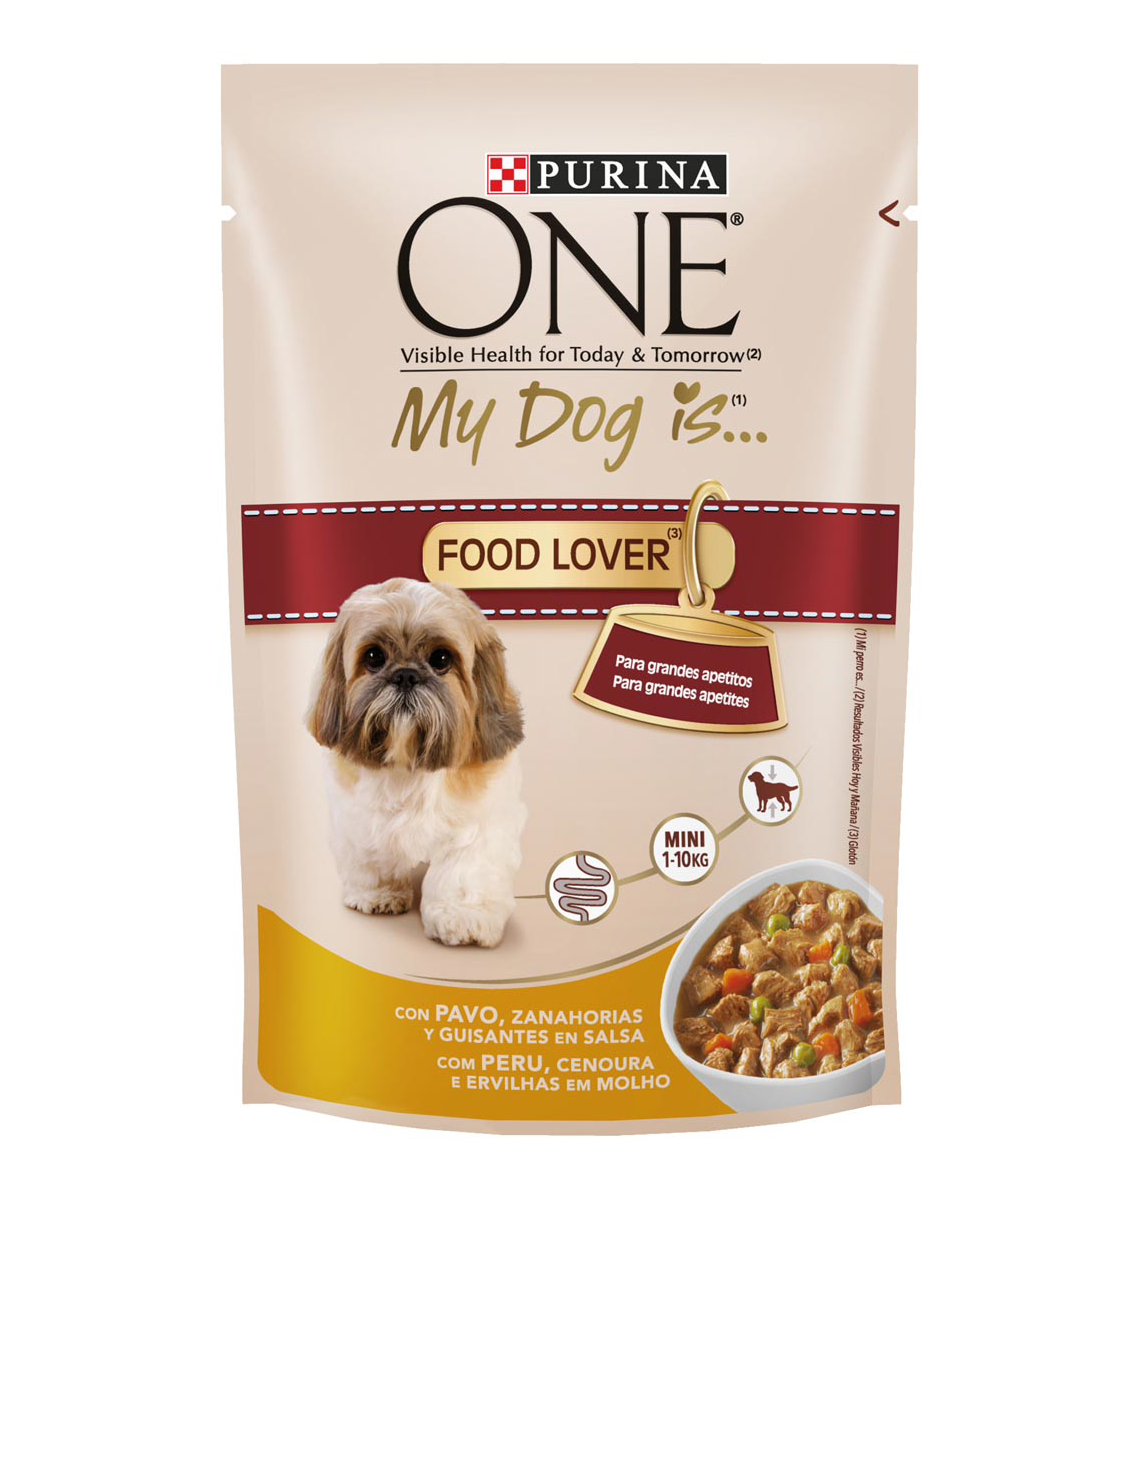 Purina One Mini my dog is food lover alimento humedo perros raza mini pavo con verduras en salsa de 100g. en bolsa